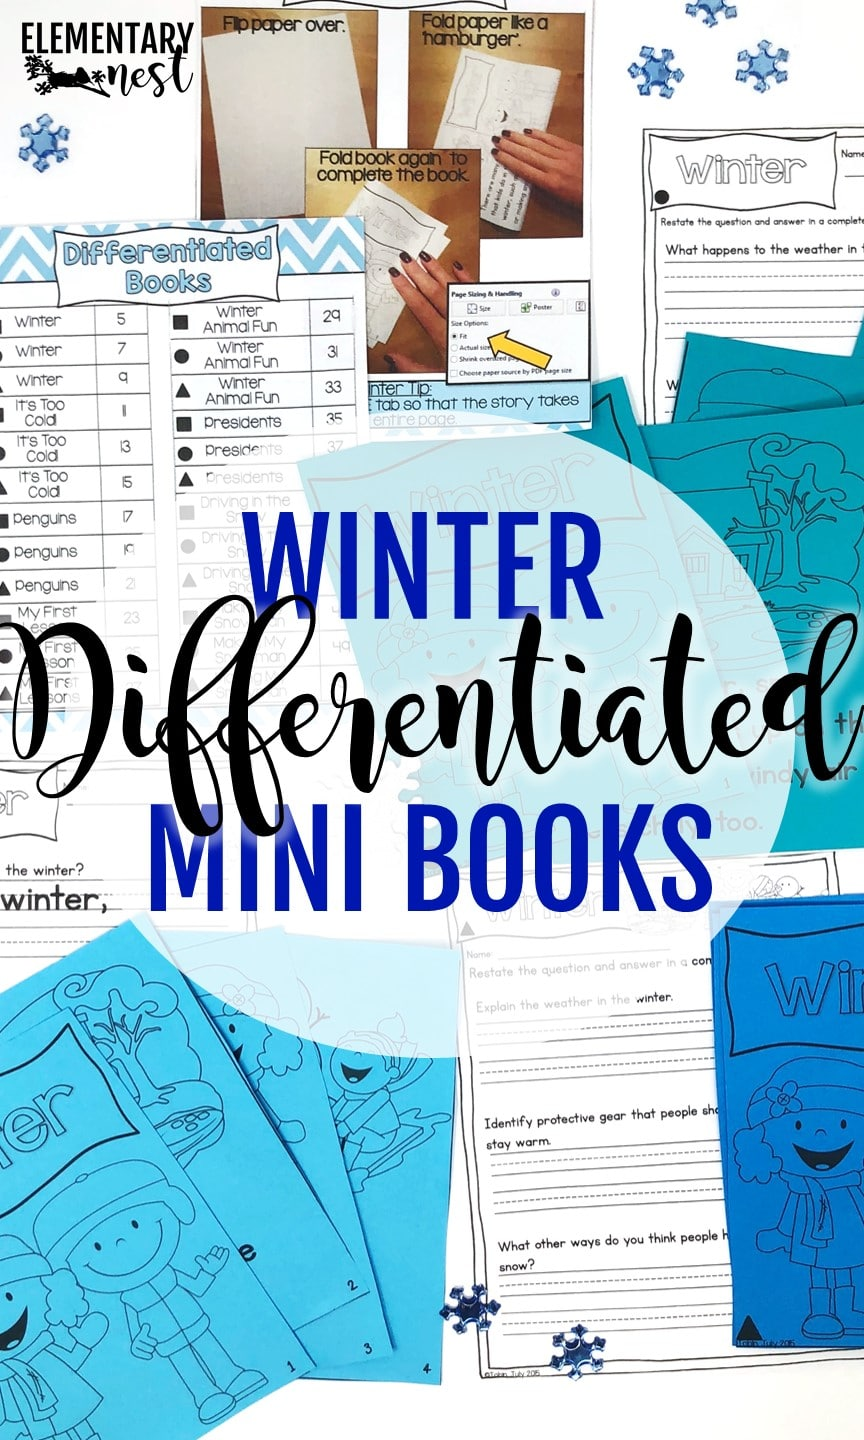 Winter-themed differentiated reading books for teaching primary school.